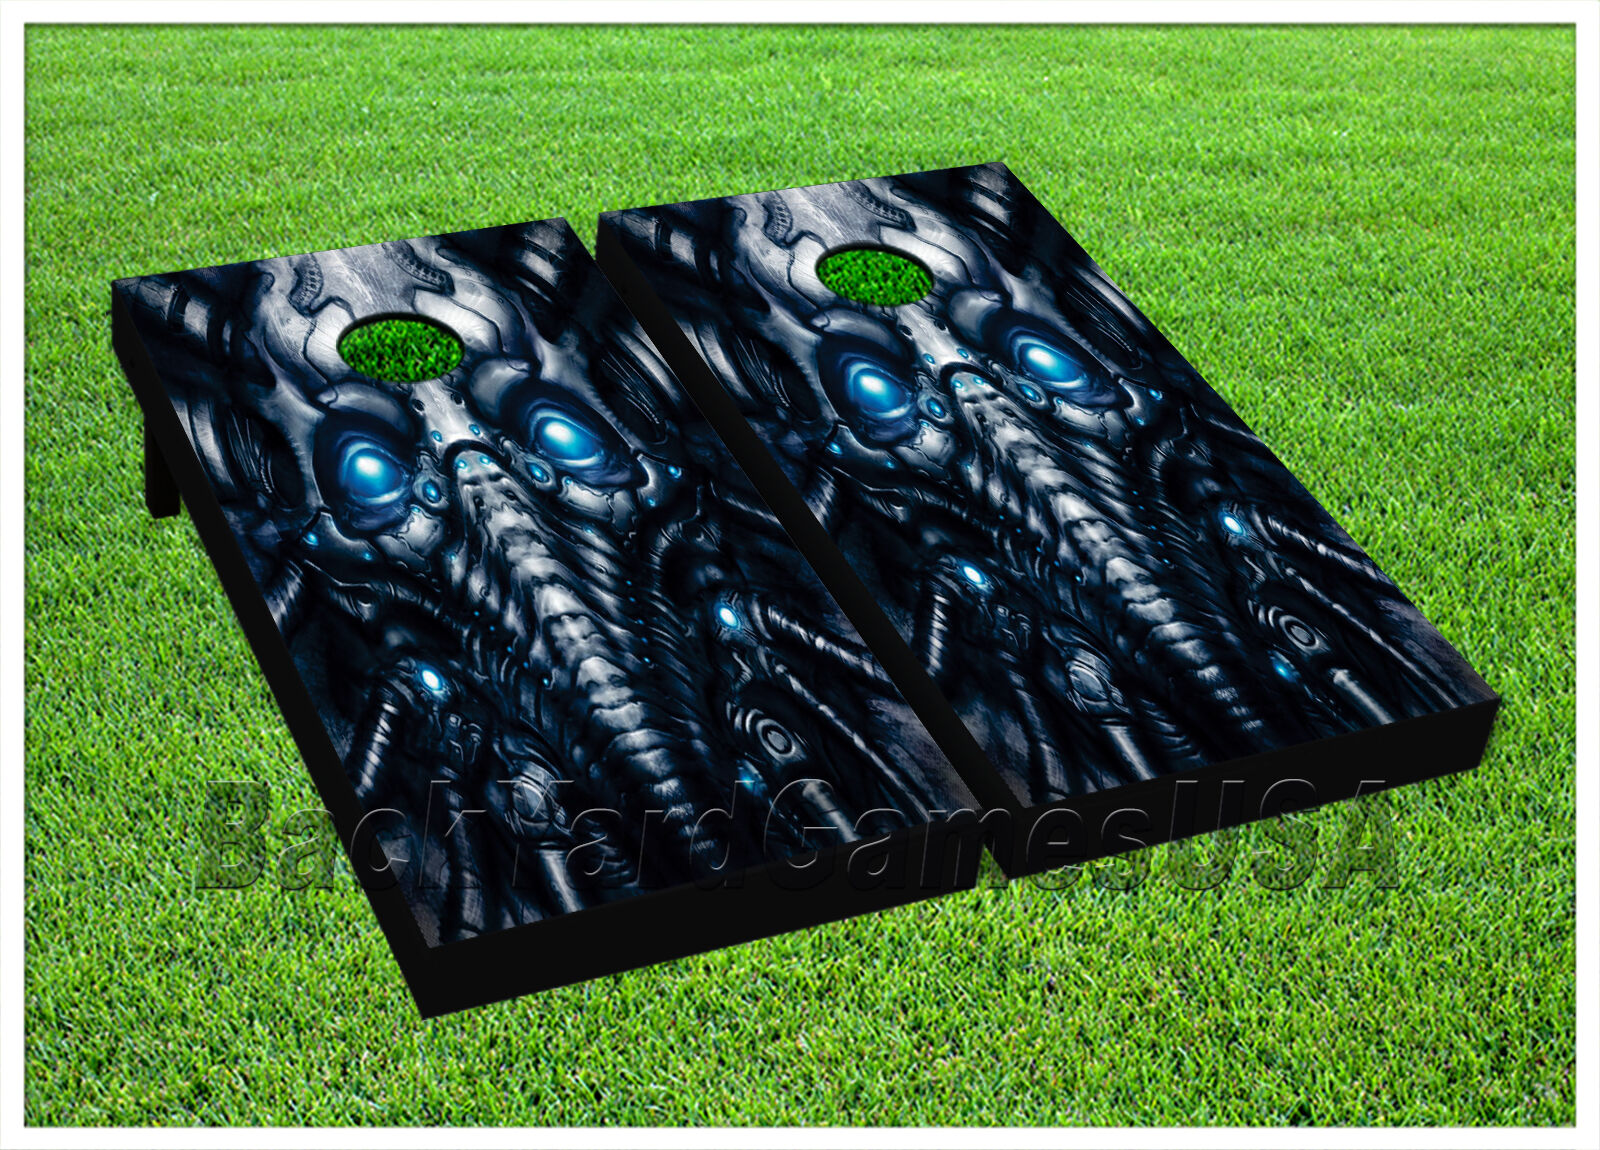 ALIEN PILOT CORNHOLE BEANBAG TOSS GAME w Bags Game  Boards ALIEN S01433  the latest